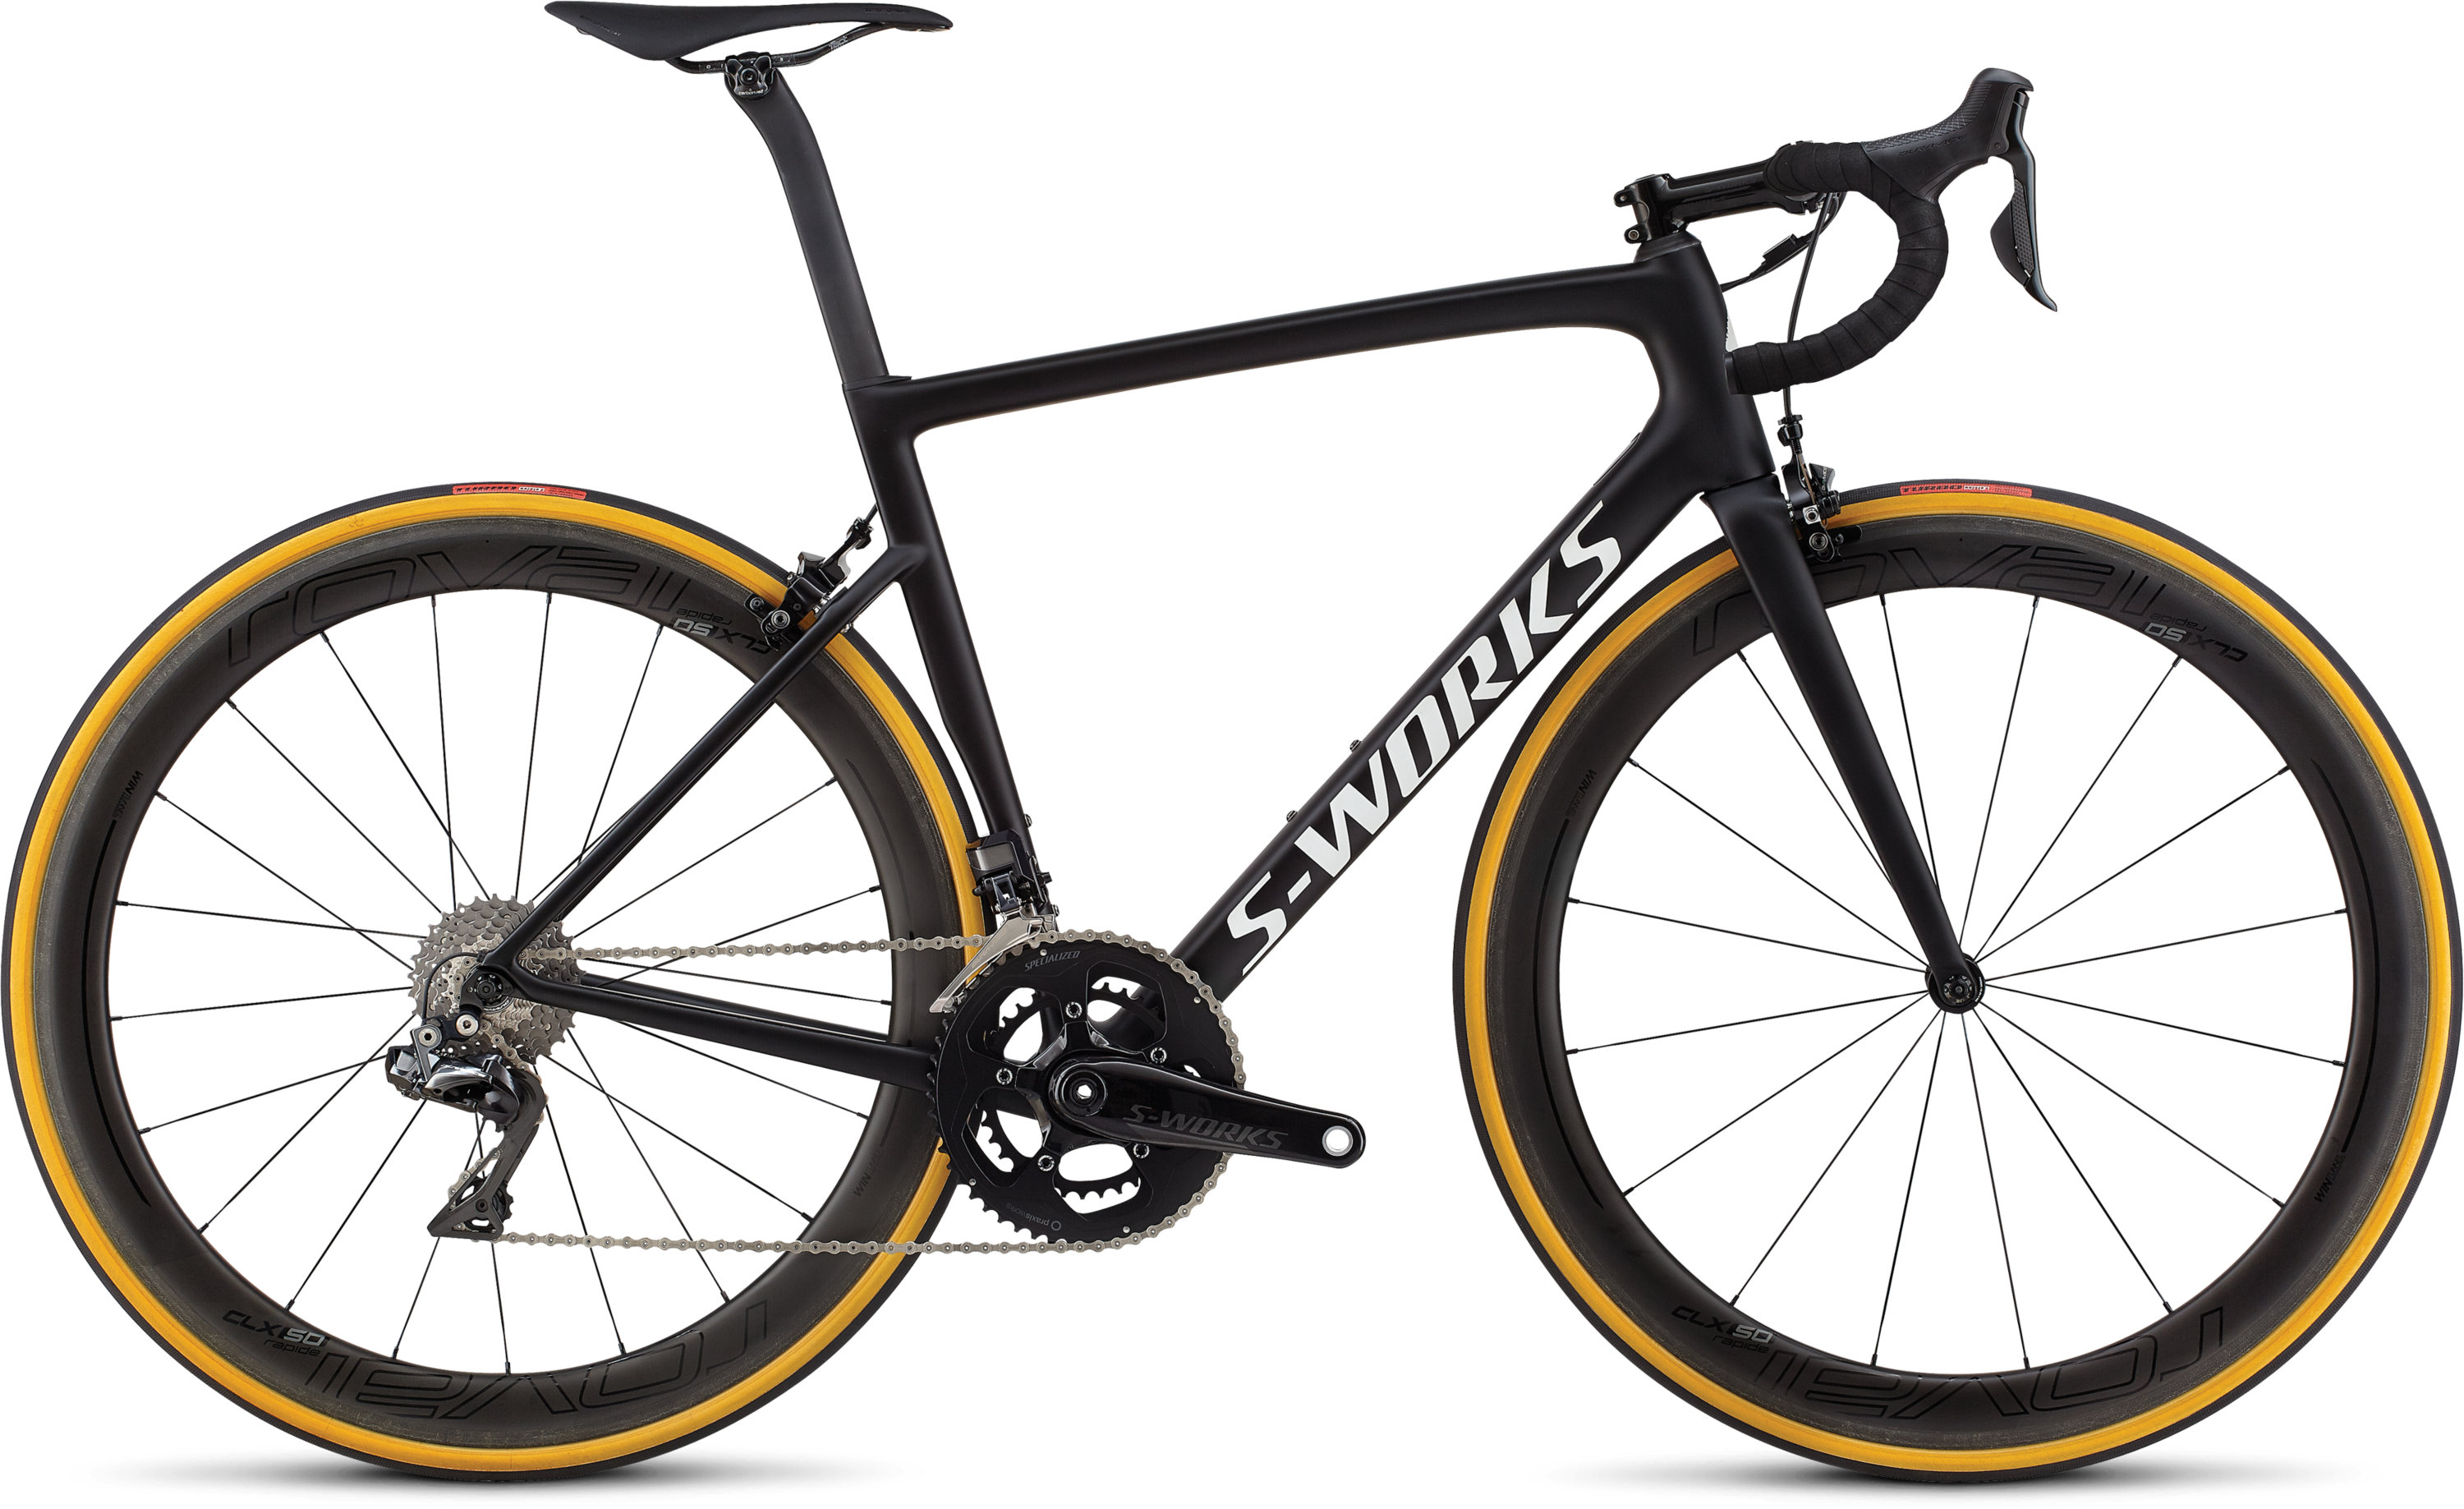 6373d783654 2018 Specialized MEN'S S-WORKS TARMAC - Specialized Concept Store